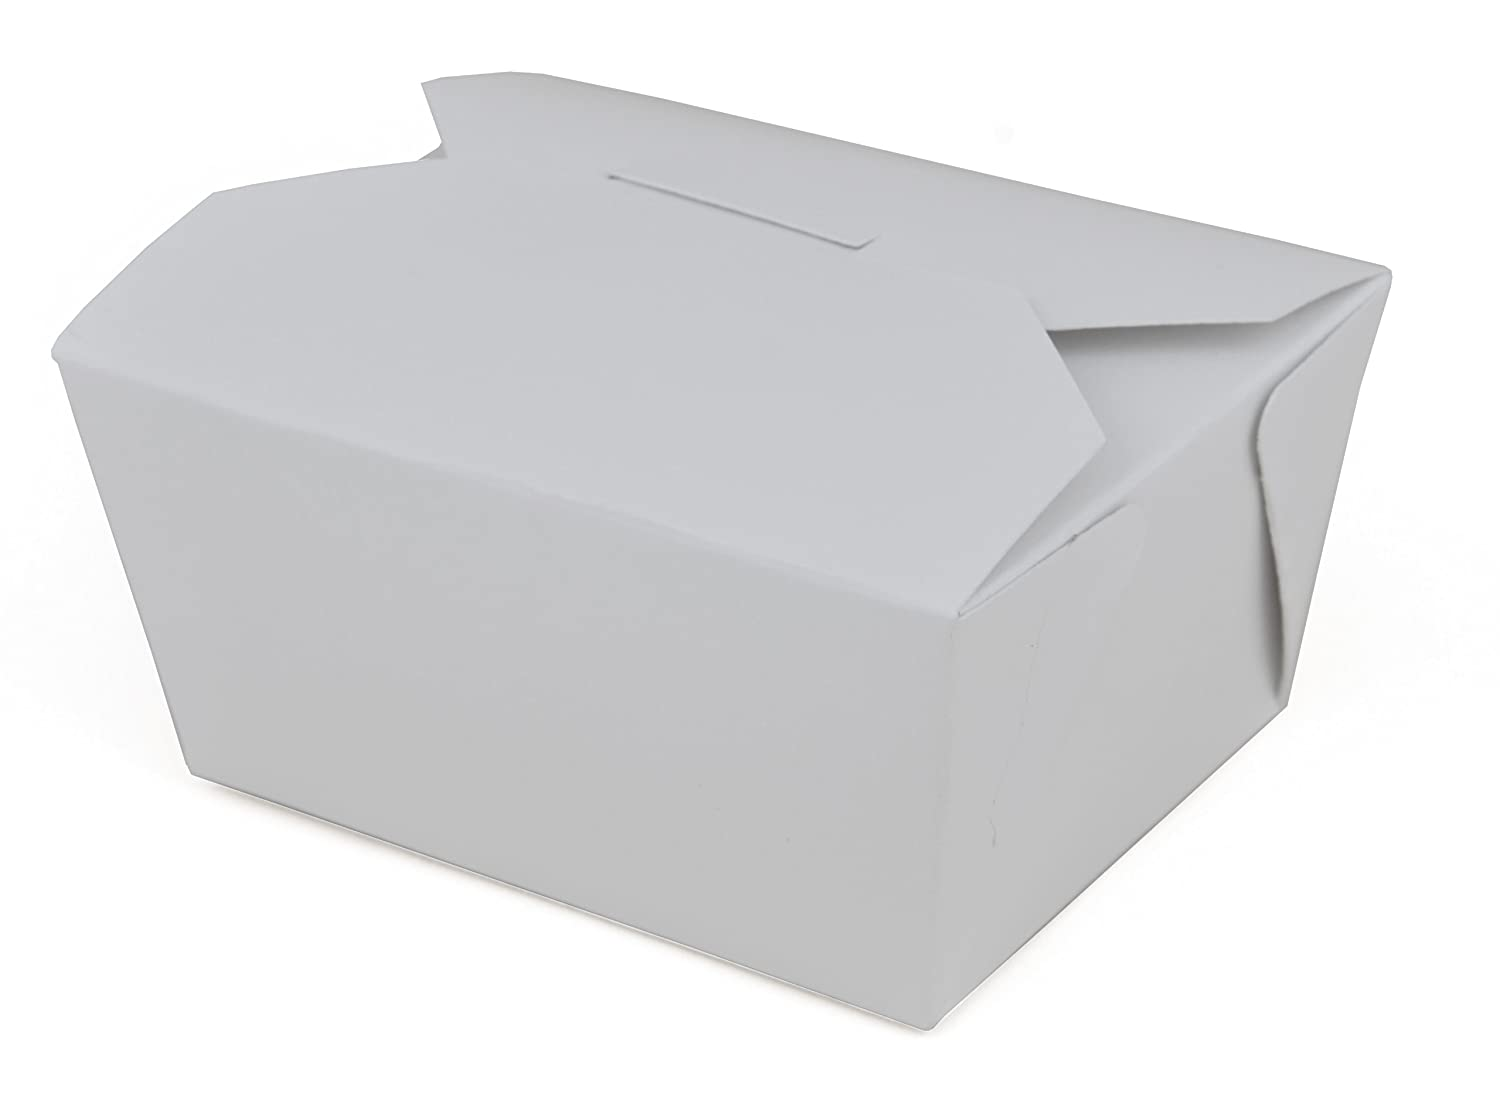 Southern Champion Tray 0771 #1 ChampPak Retro Take-Out Container, White Paperboard with Poly Coated Inside, 4-3/8